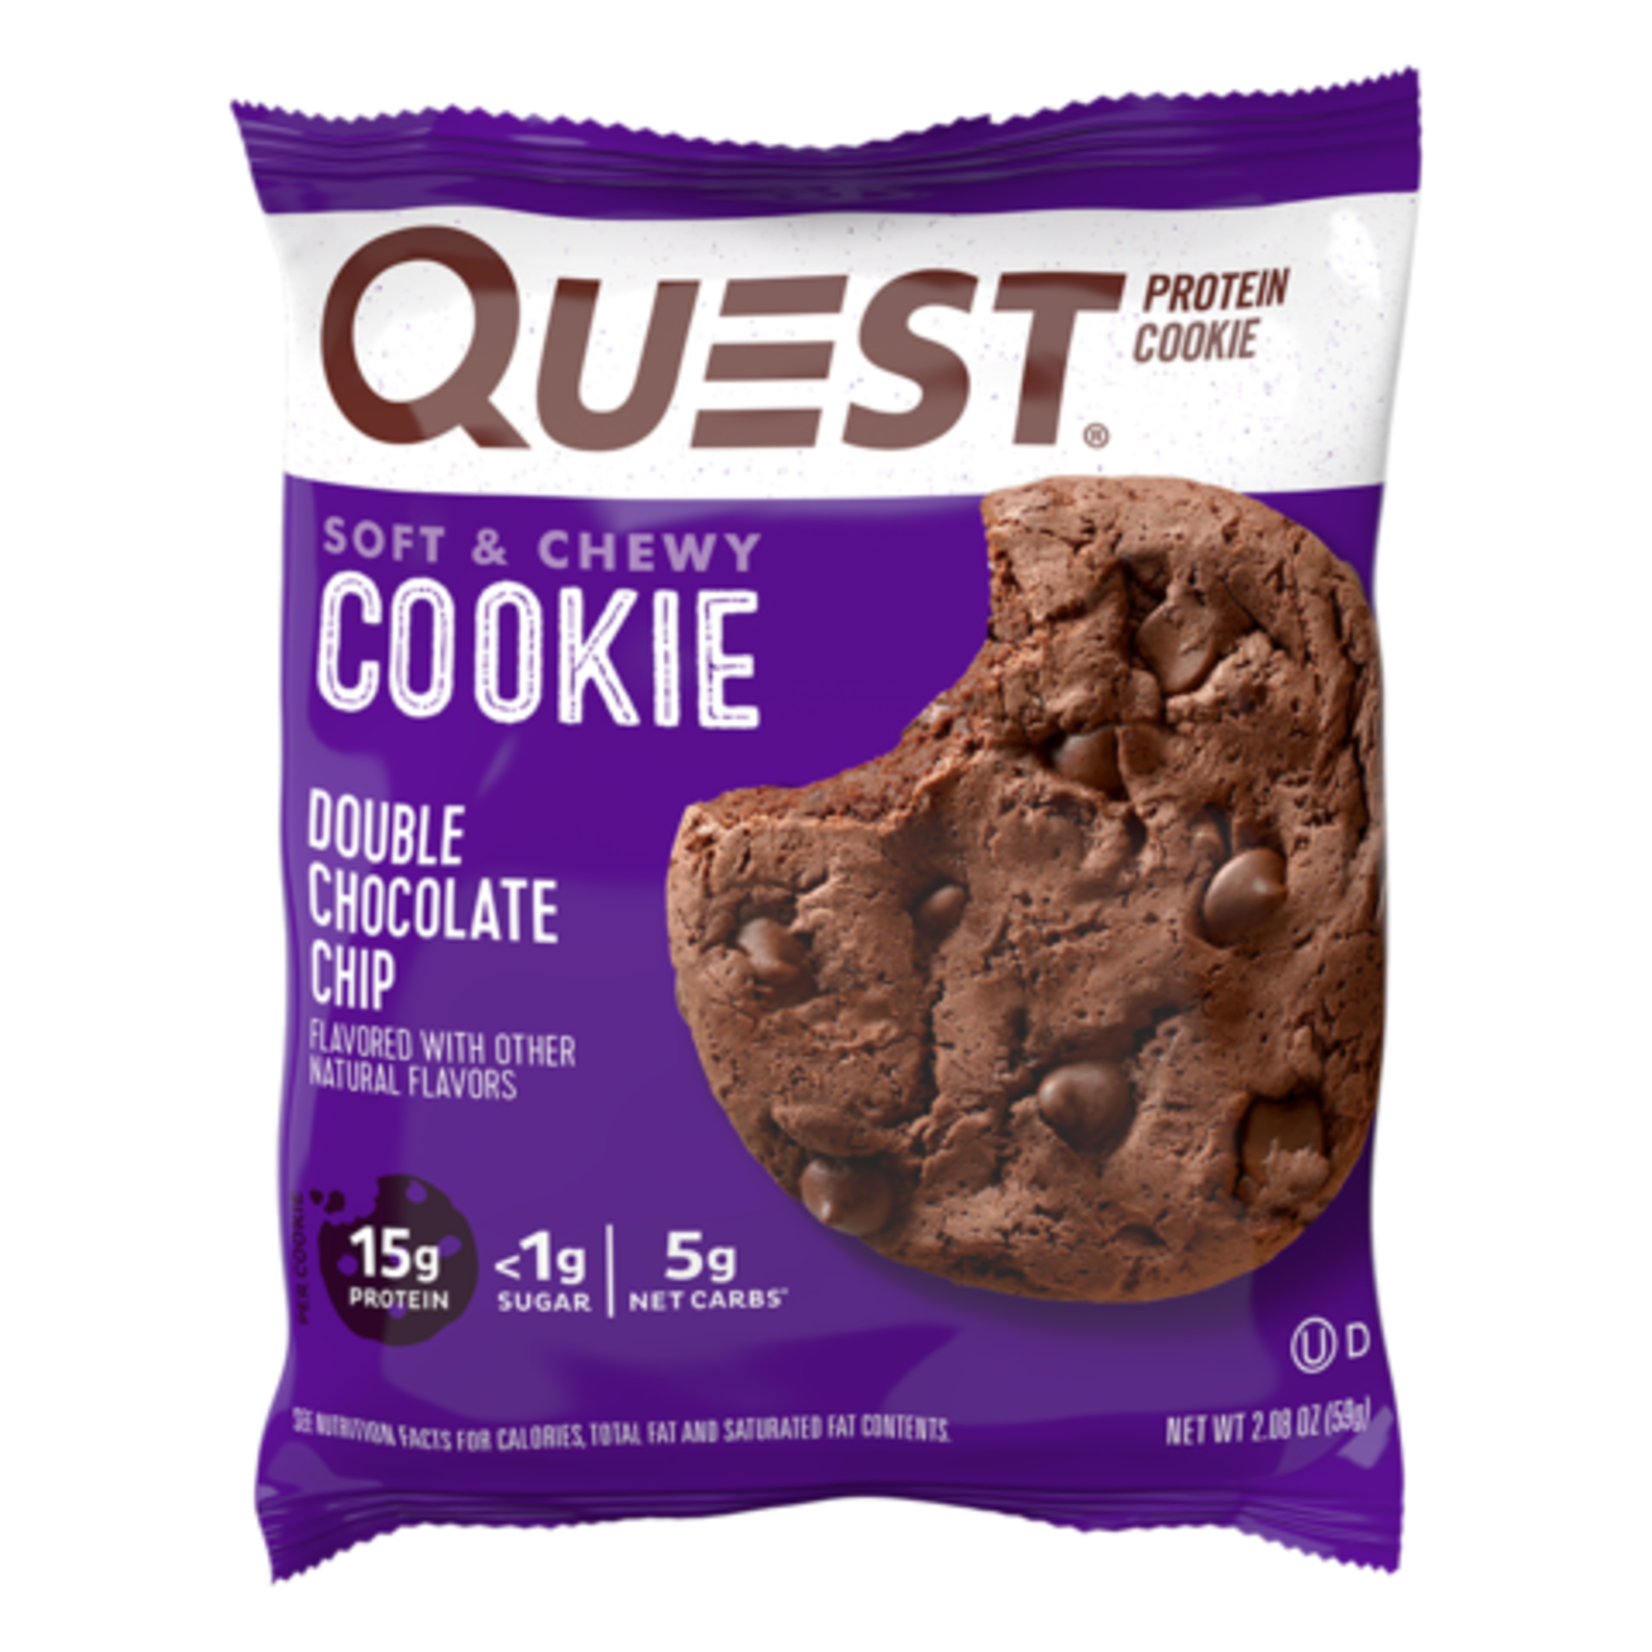 Quest Quest Double Chocolate Chip Cookie